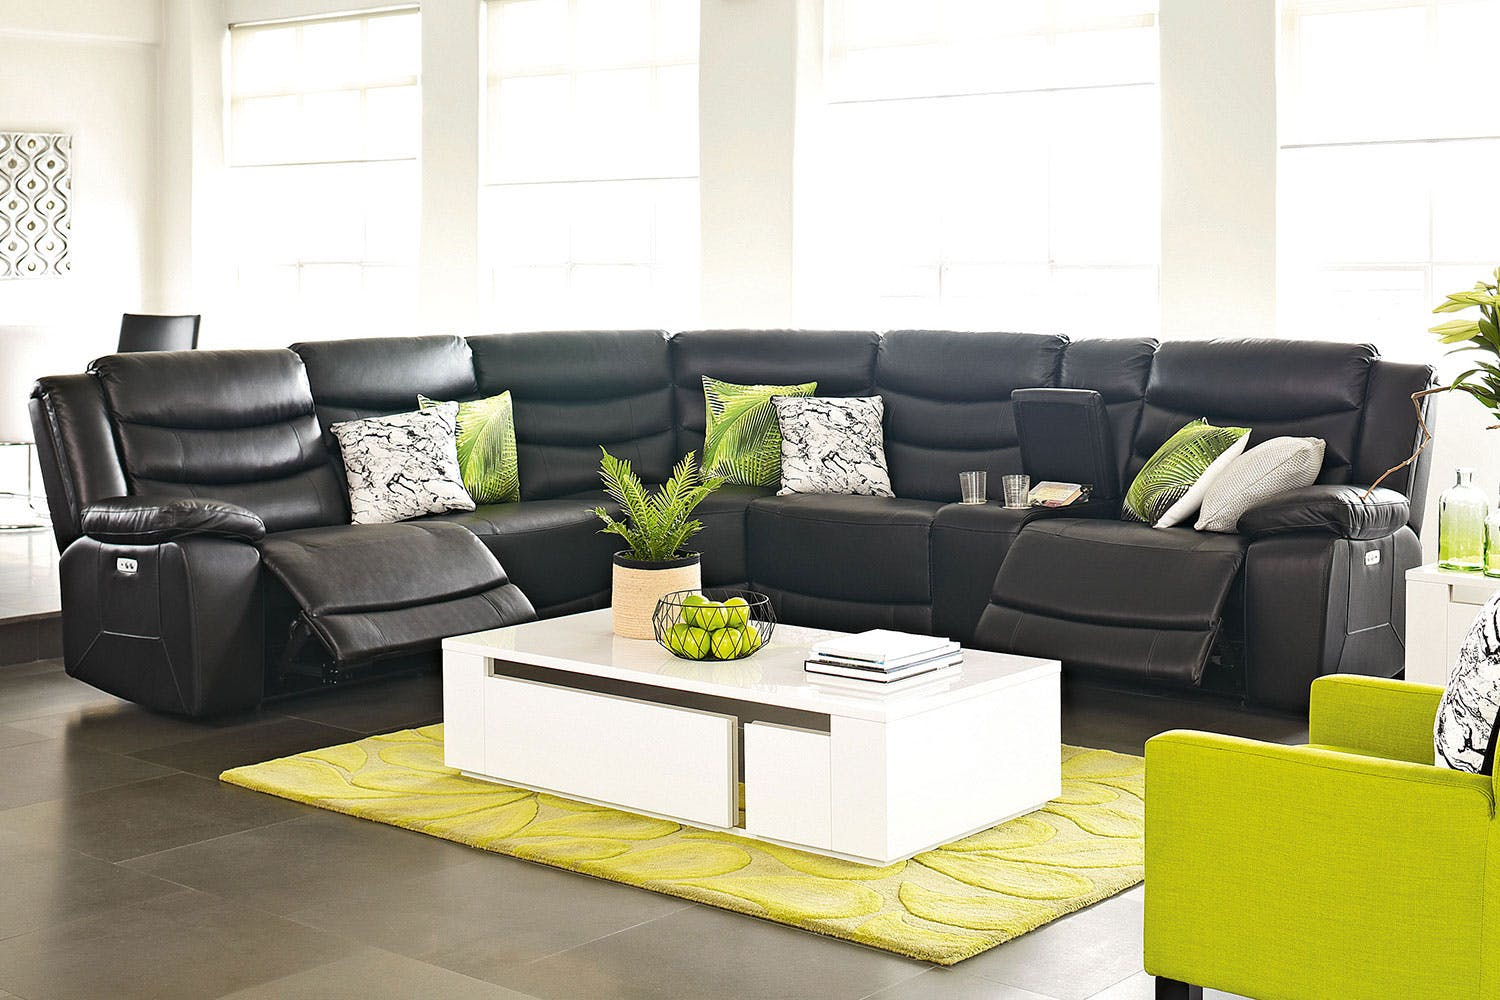 Cairo 5 Seater Leather Corner Lounge Suite By Synargy